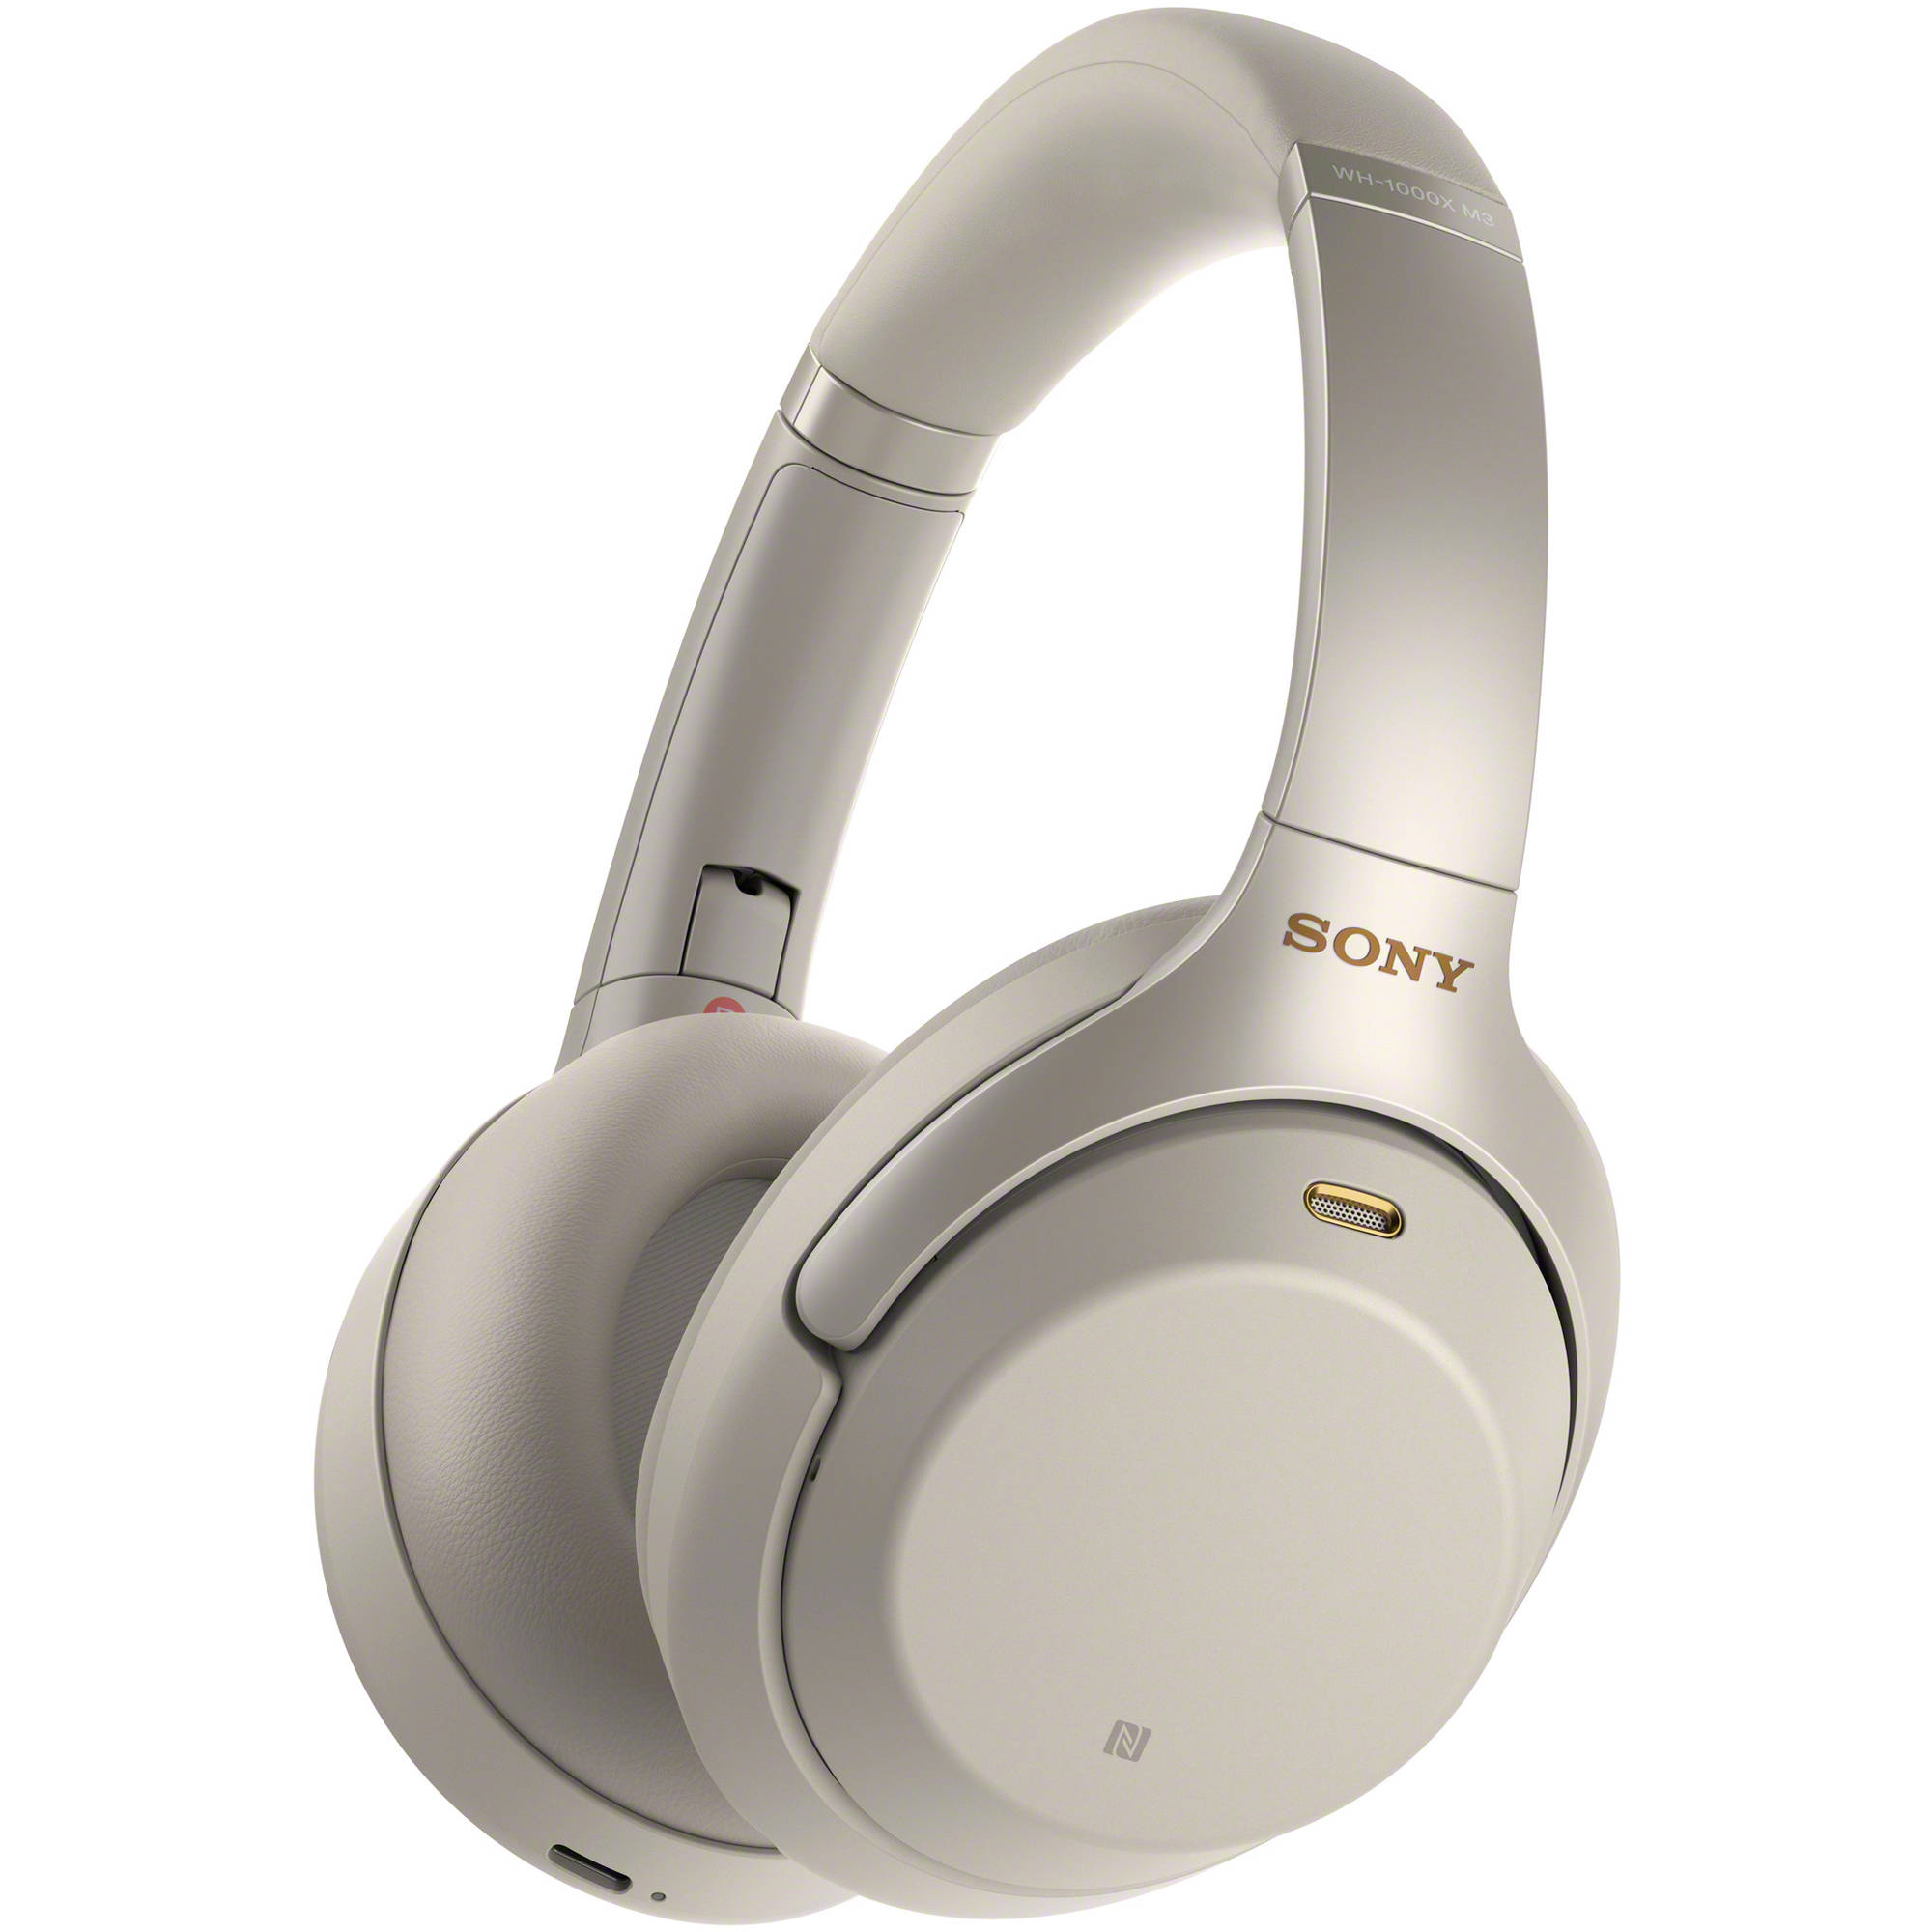 9a75dd7a0d1 Sony WH-1000XM3 Wireless Noise-Canceling Over-Ear WH1000XM3/S